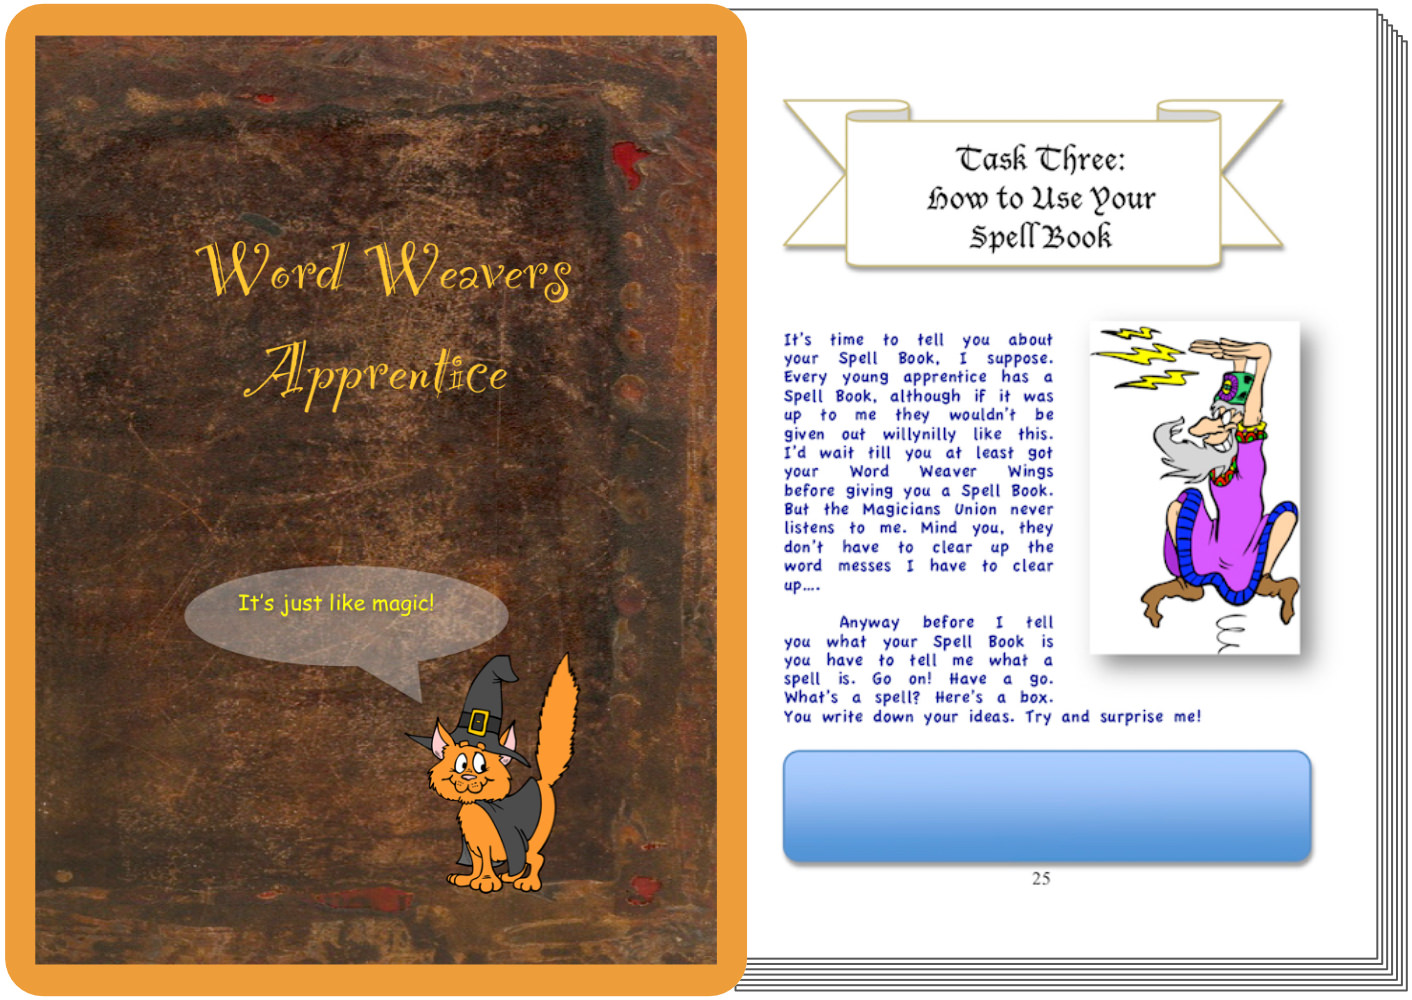 - Word Weavers Apprentice